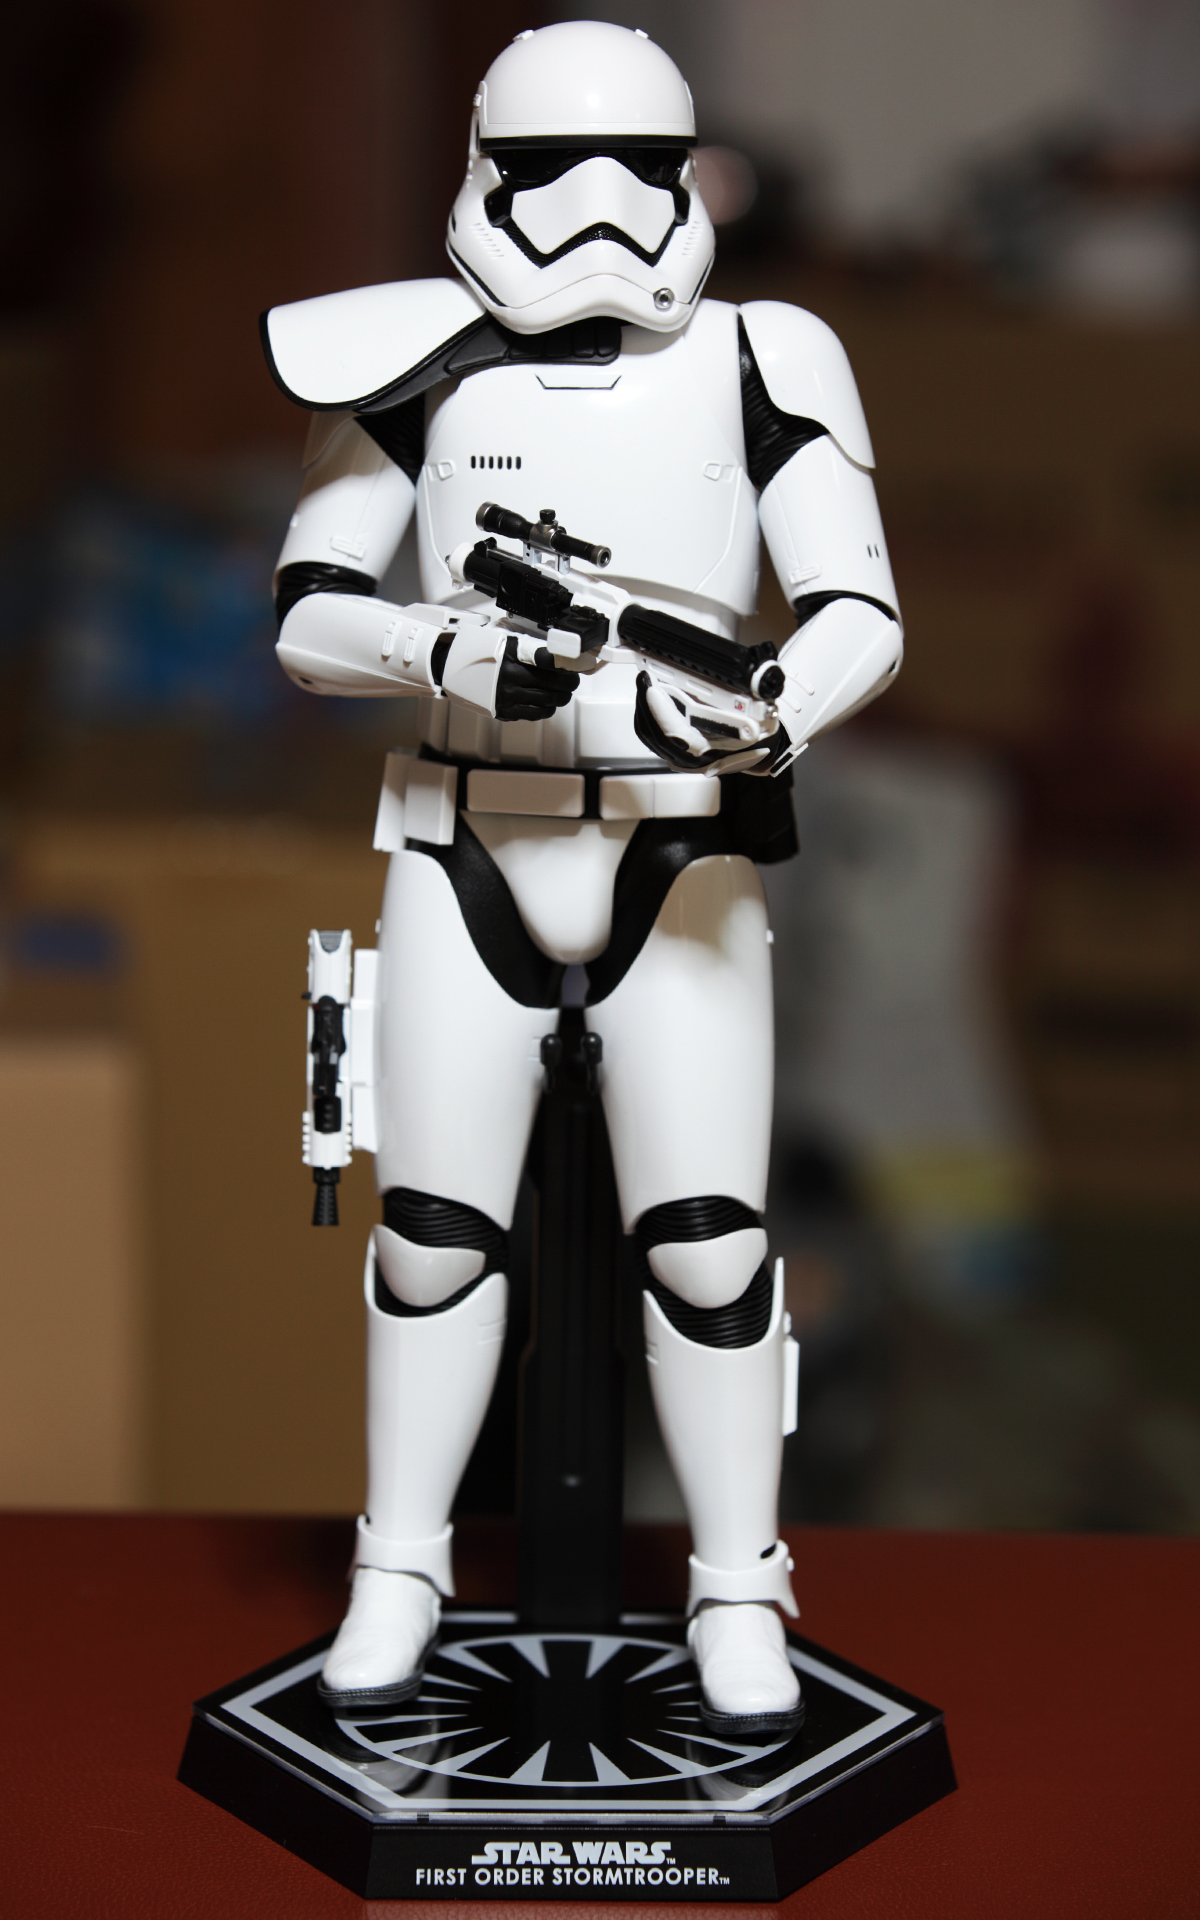 hottoys-star-wars-the-force-awakens-first-order-stormtrooper-Squad-Leader-picture01hottoys-star-wars-the-force-awakens-first-order-stormtrooper-Squad-Leader-picture12